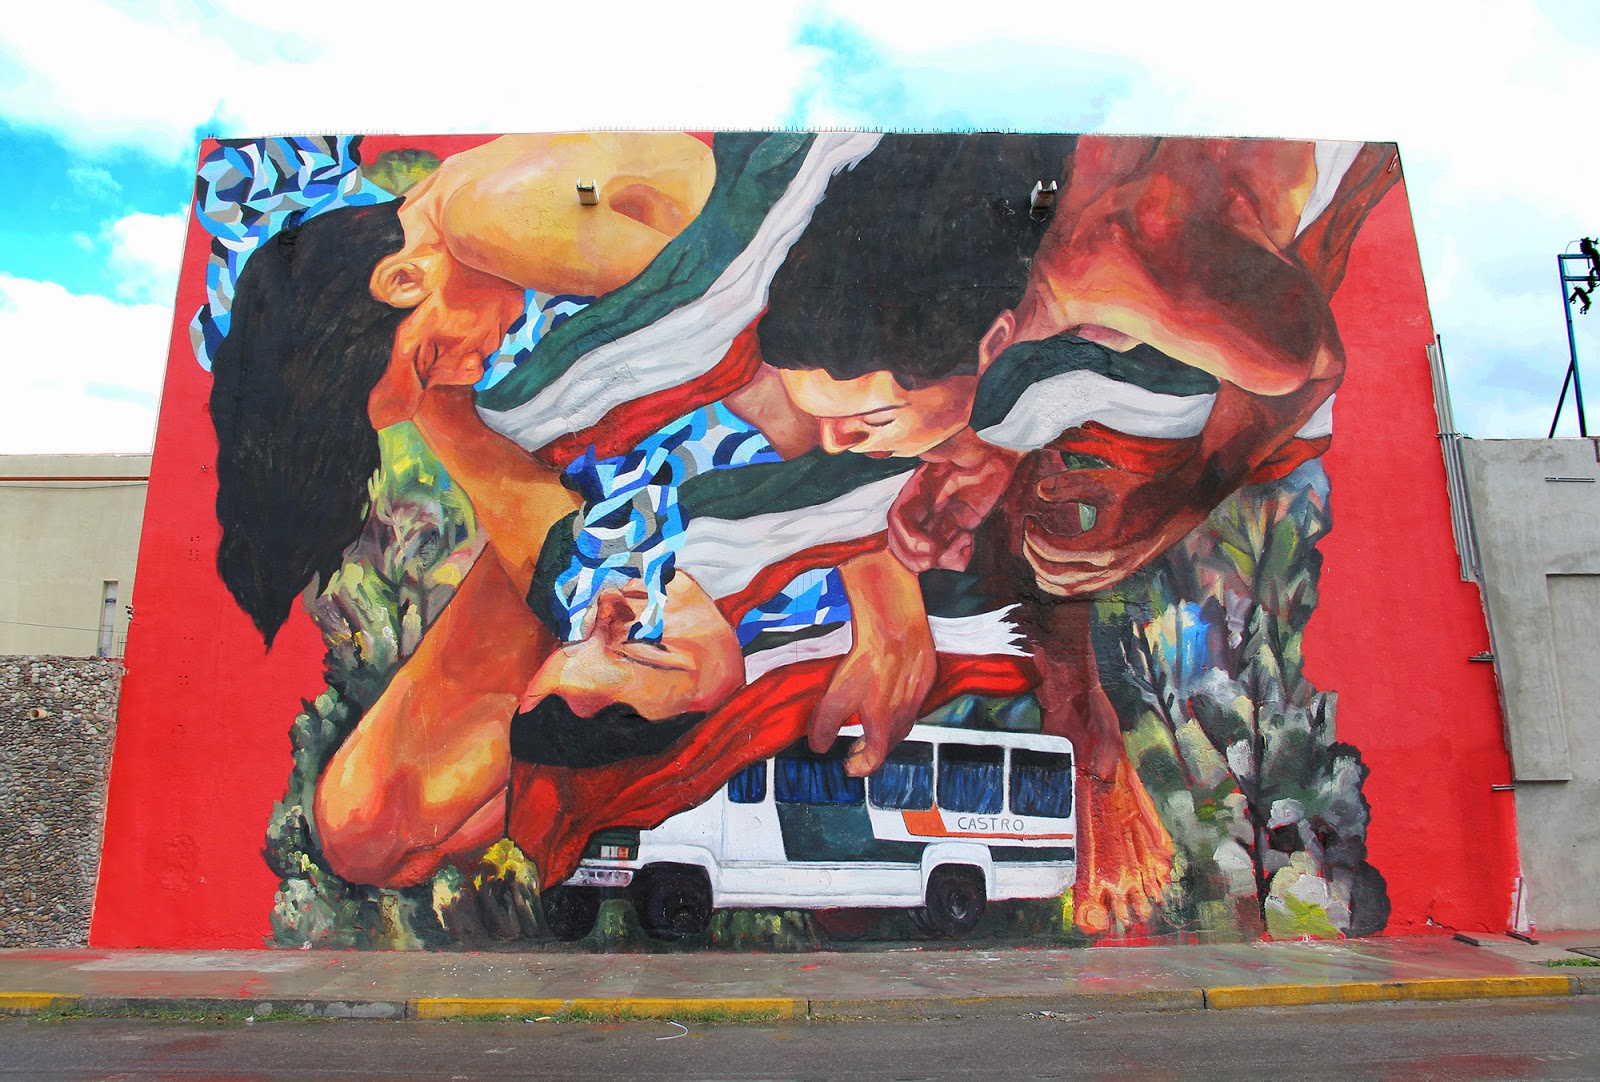 After the successful opening of his exhibition in Queretaro, Ever is still in Mexico where he was invited to paint a new piece on the streets of Ciudad Juarez.